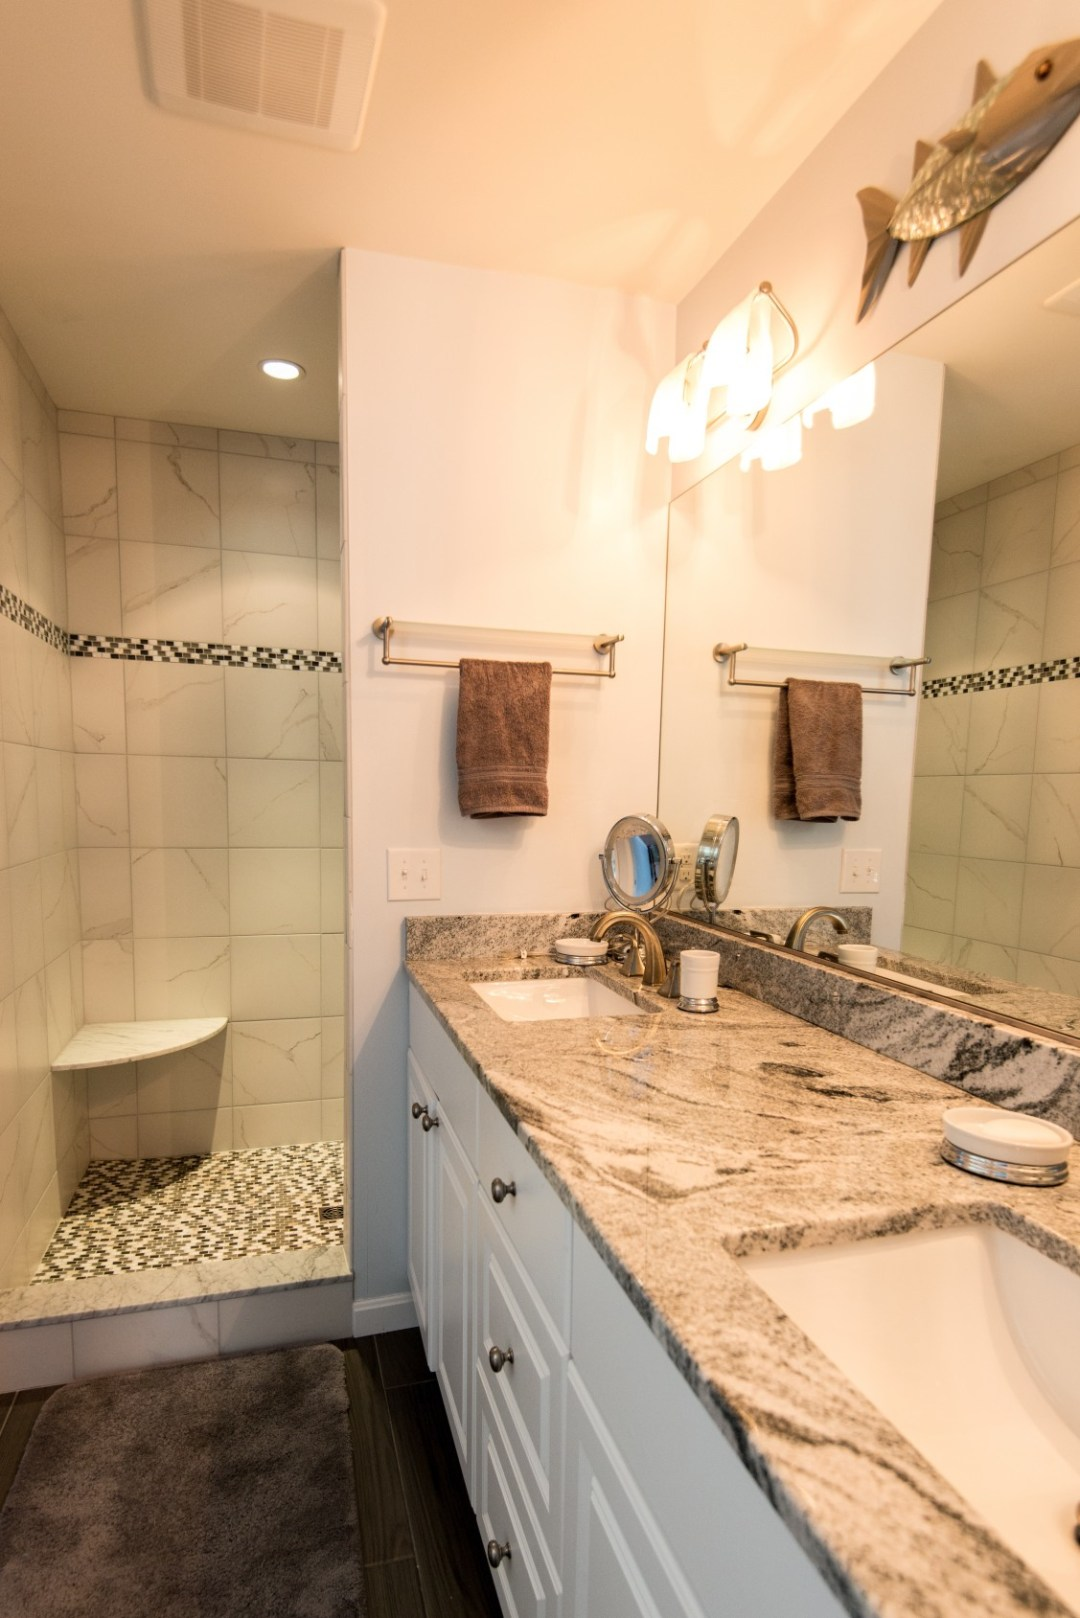 Willow Oak New Addition in Bear Trap Dunes, Ocean View DE Bathroom with Undermount Two Sinks and Granite Top Vanity